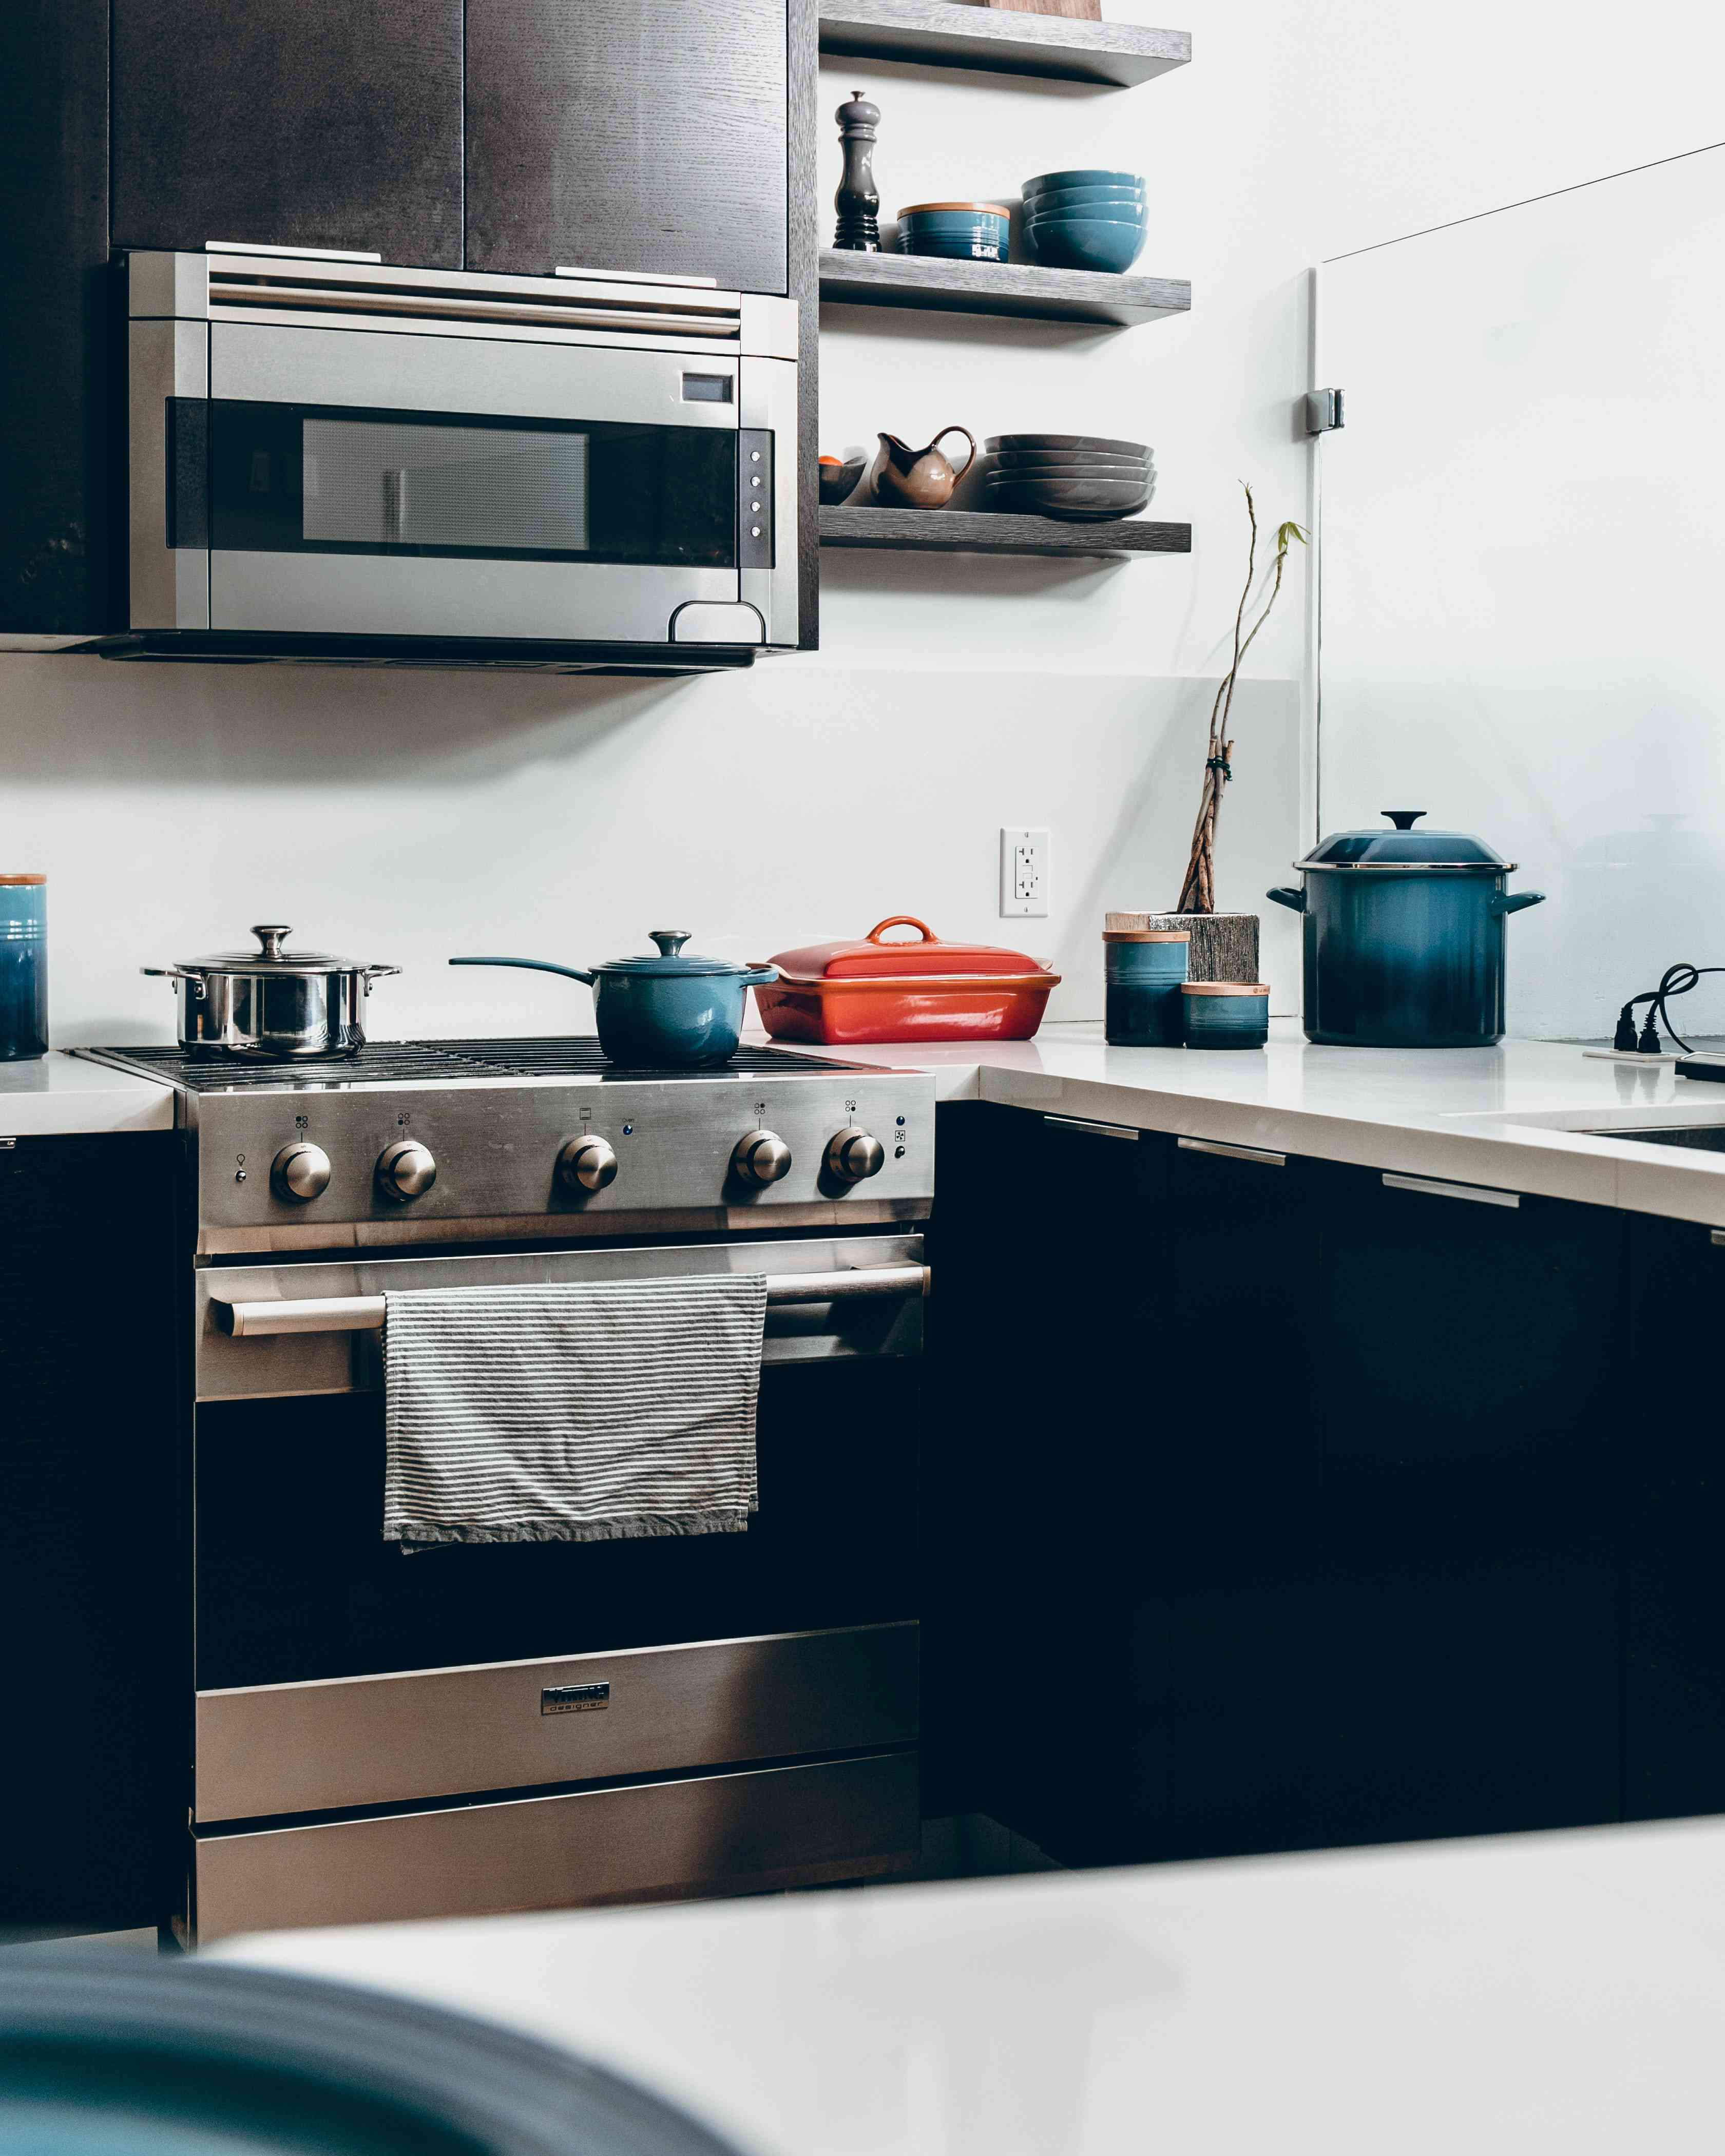 Oven in a kitchen with pots and pans